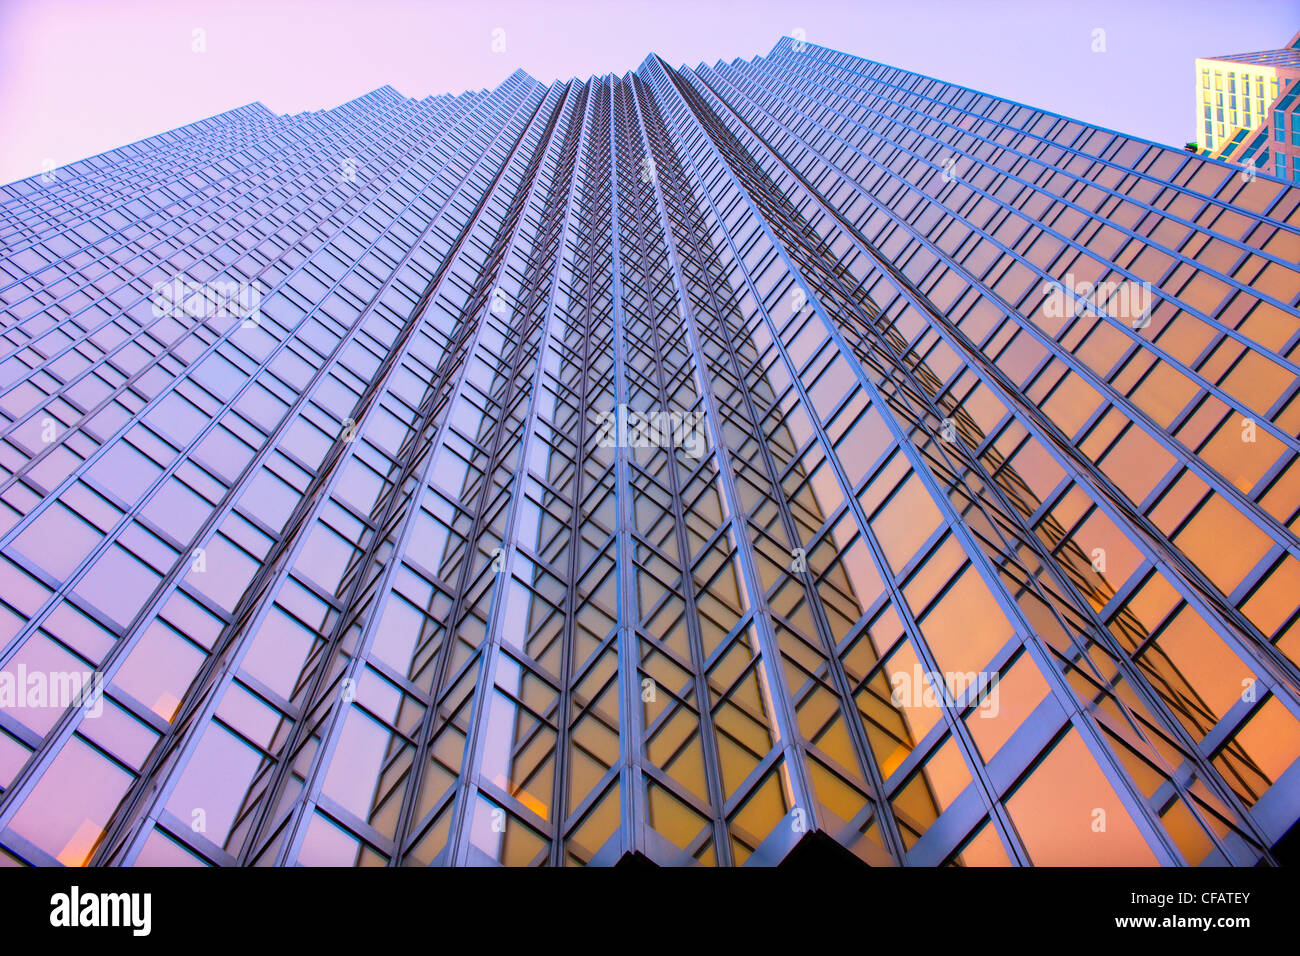 BCE Place, office complex in downtown Toronto, Ontario, Canada. - Stock Image